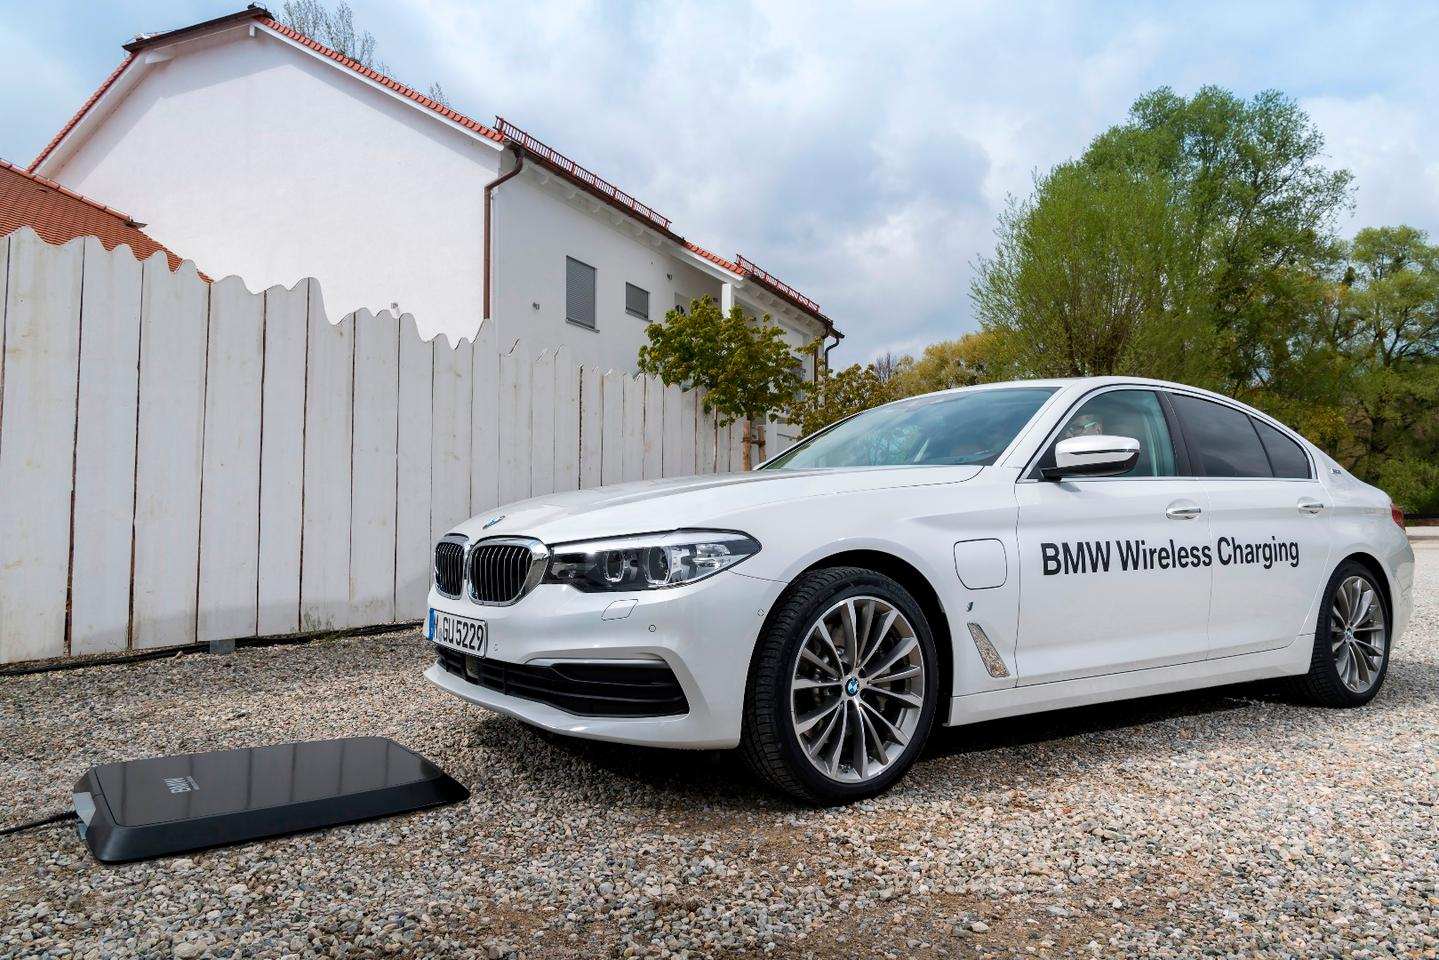 The charging option is set as a lease in Germany and will become available in the United Kingdom, United States, Japan, and China in subsequent rollouts